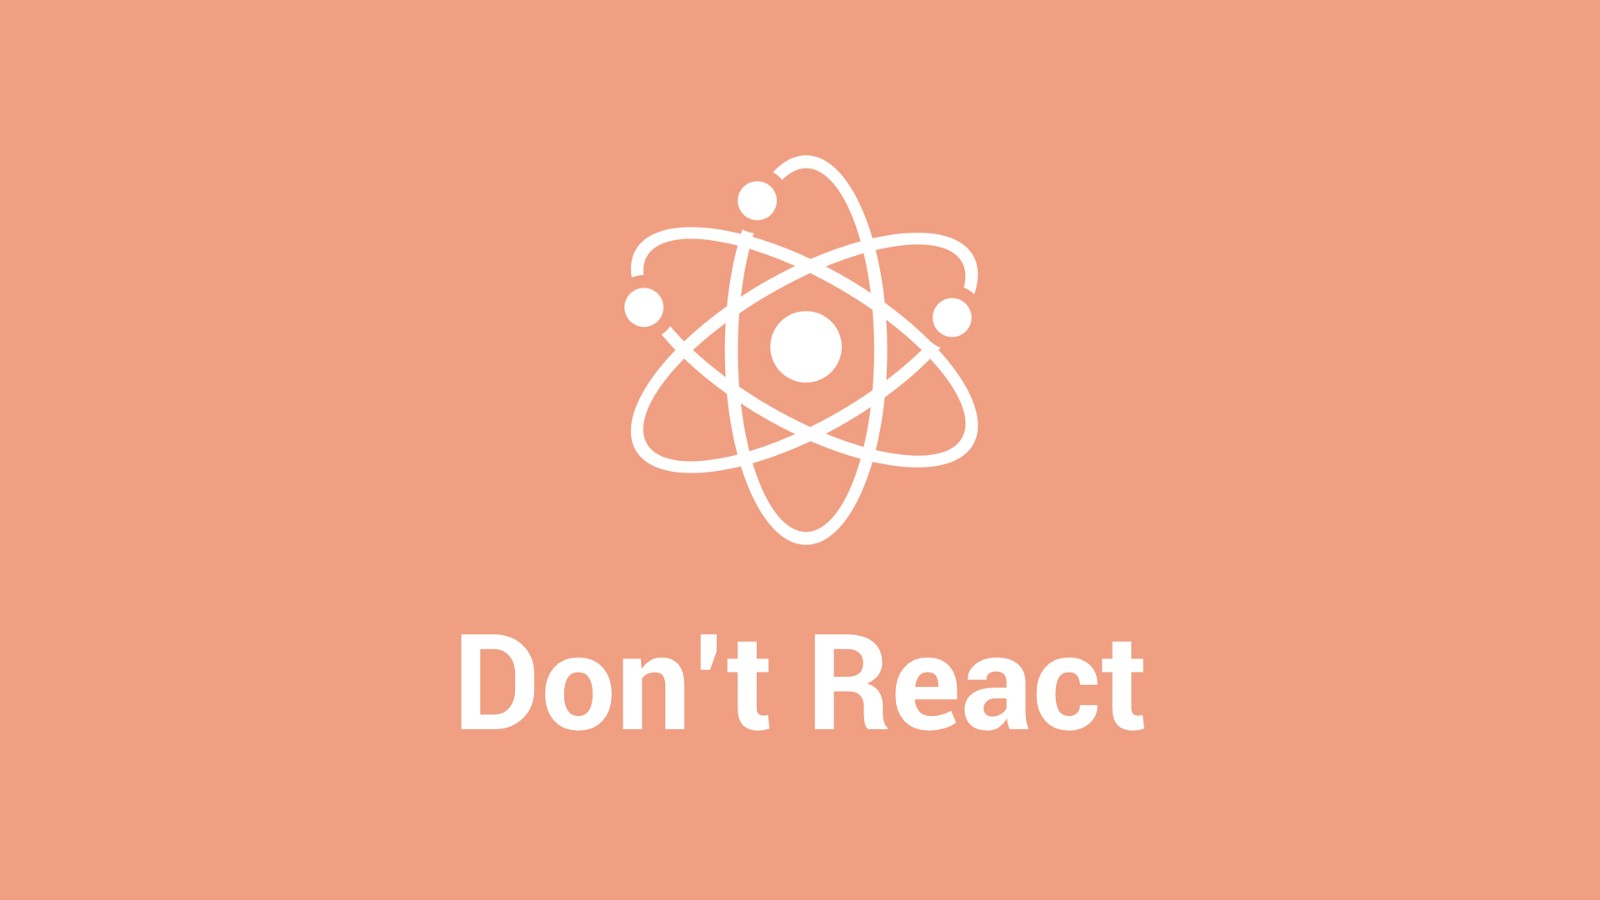 dont-react.jpeg